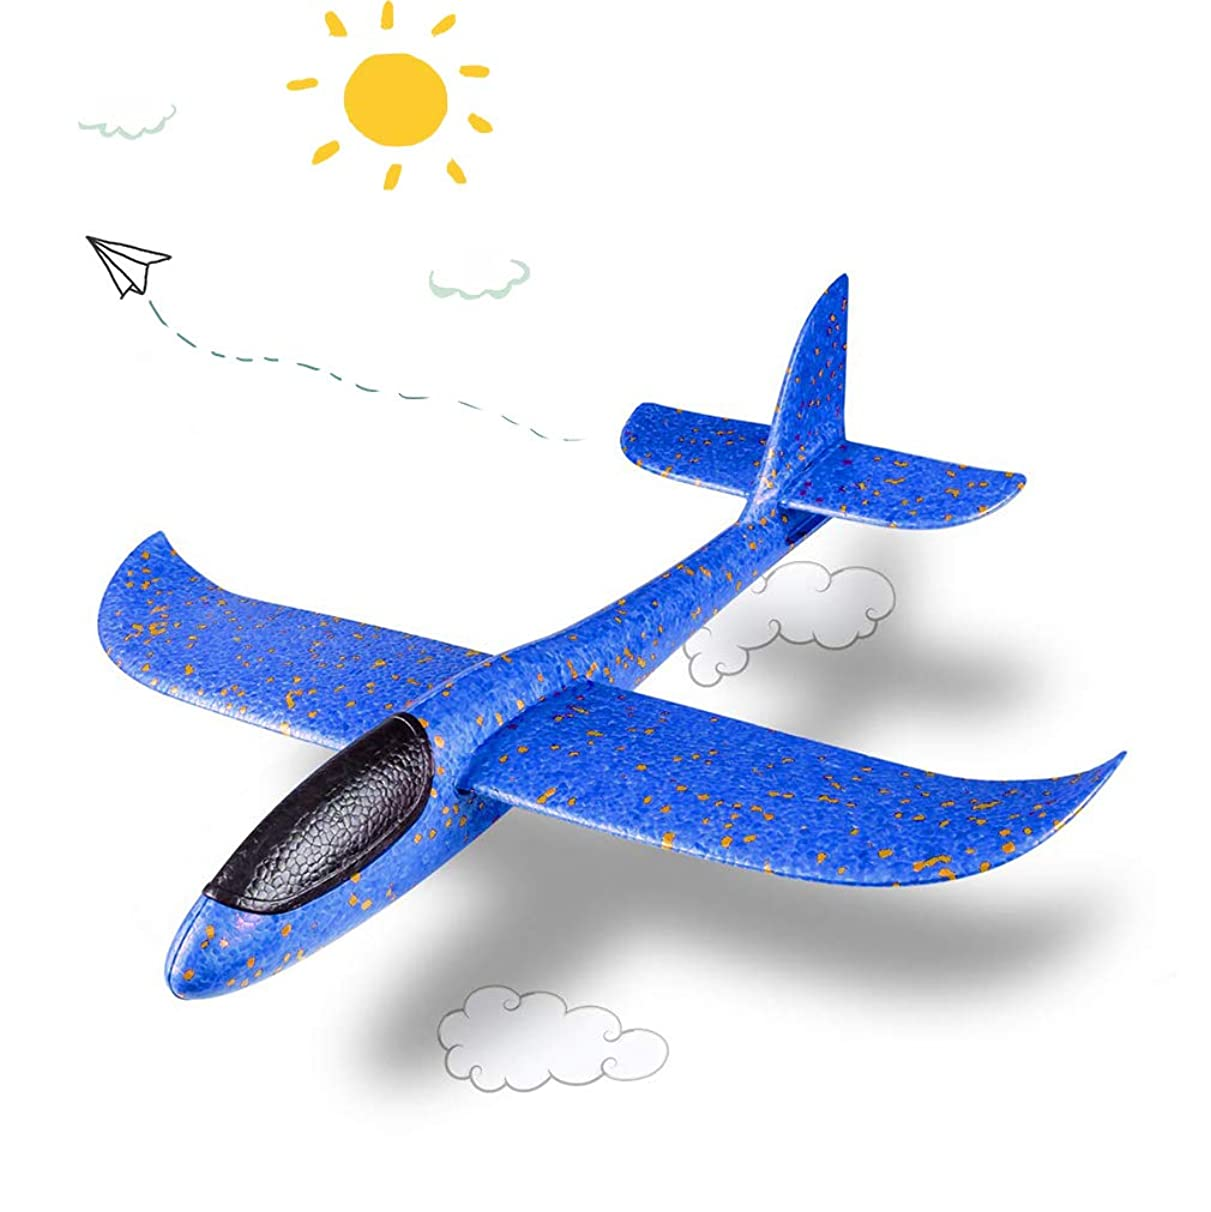 HongKit Manual Throwing Foam Airplane Outdoor Game Toys for Kids for Childrens Day Gift